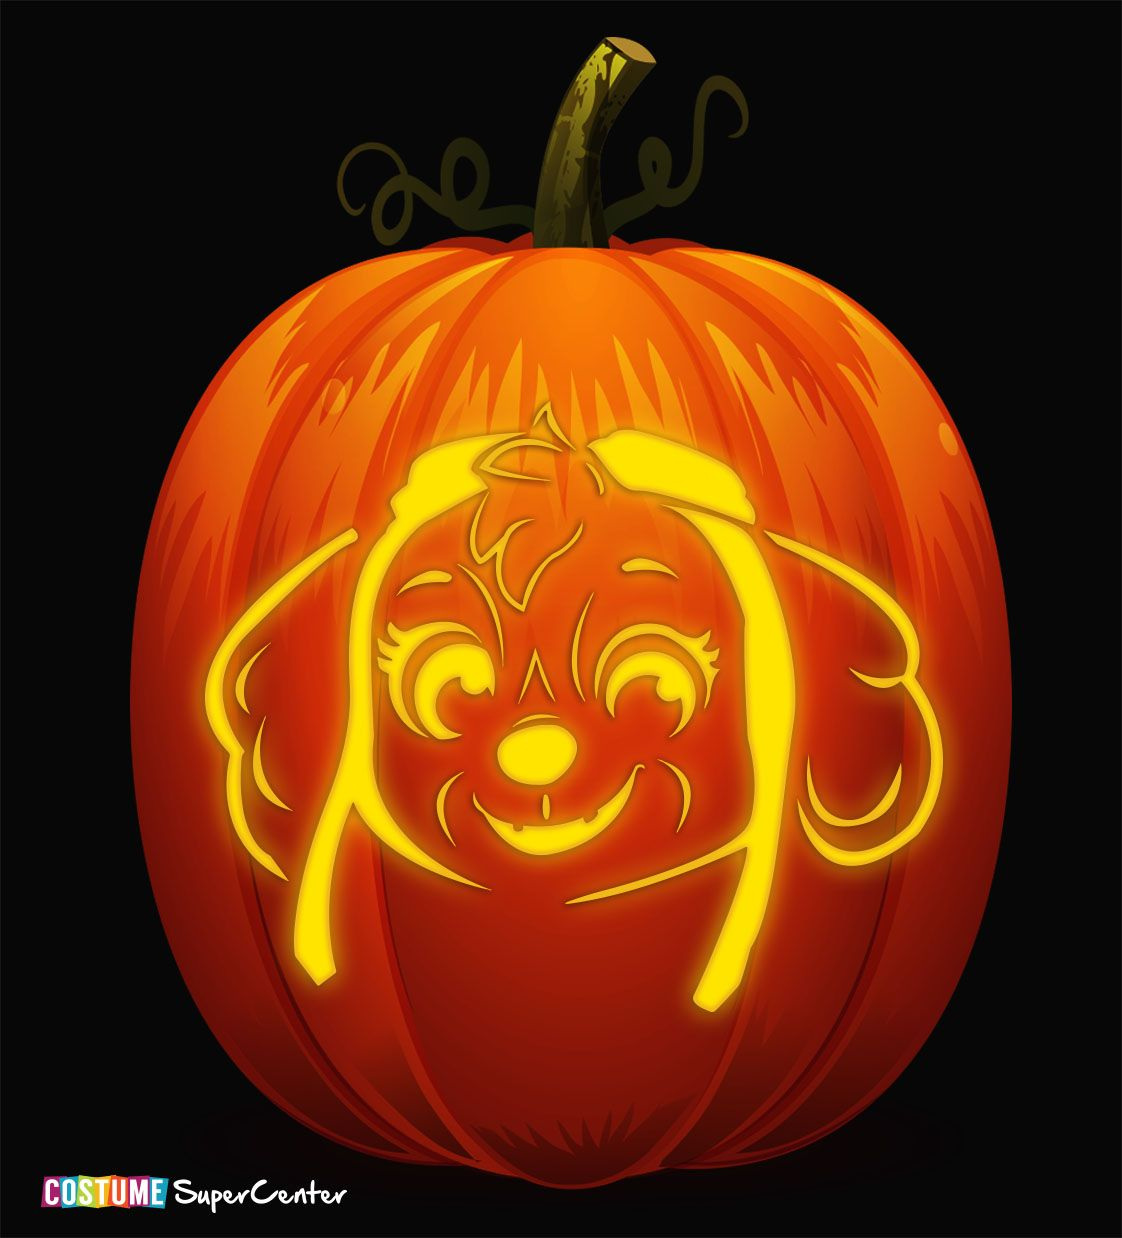 FREE Paw Patrol Pumpkin Stencils - Paw patrol pumpkin stencil, Pumpkin stencil, Pumpkin, Pumpkin carvings stencils, Skye paw patrol, Pumpkin carving patterns - Fetch the squad and get ready to search for the best pumpkin in the patch  Why, you ask  Because we've got some free pumpkin carving stencils that will save the day  When you're patroll…